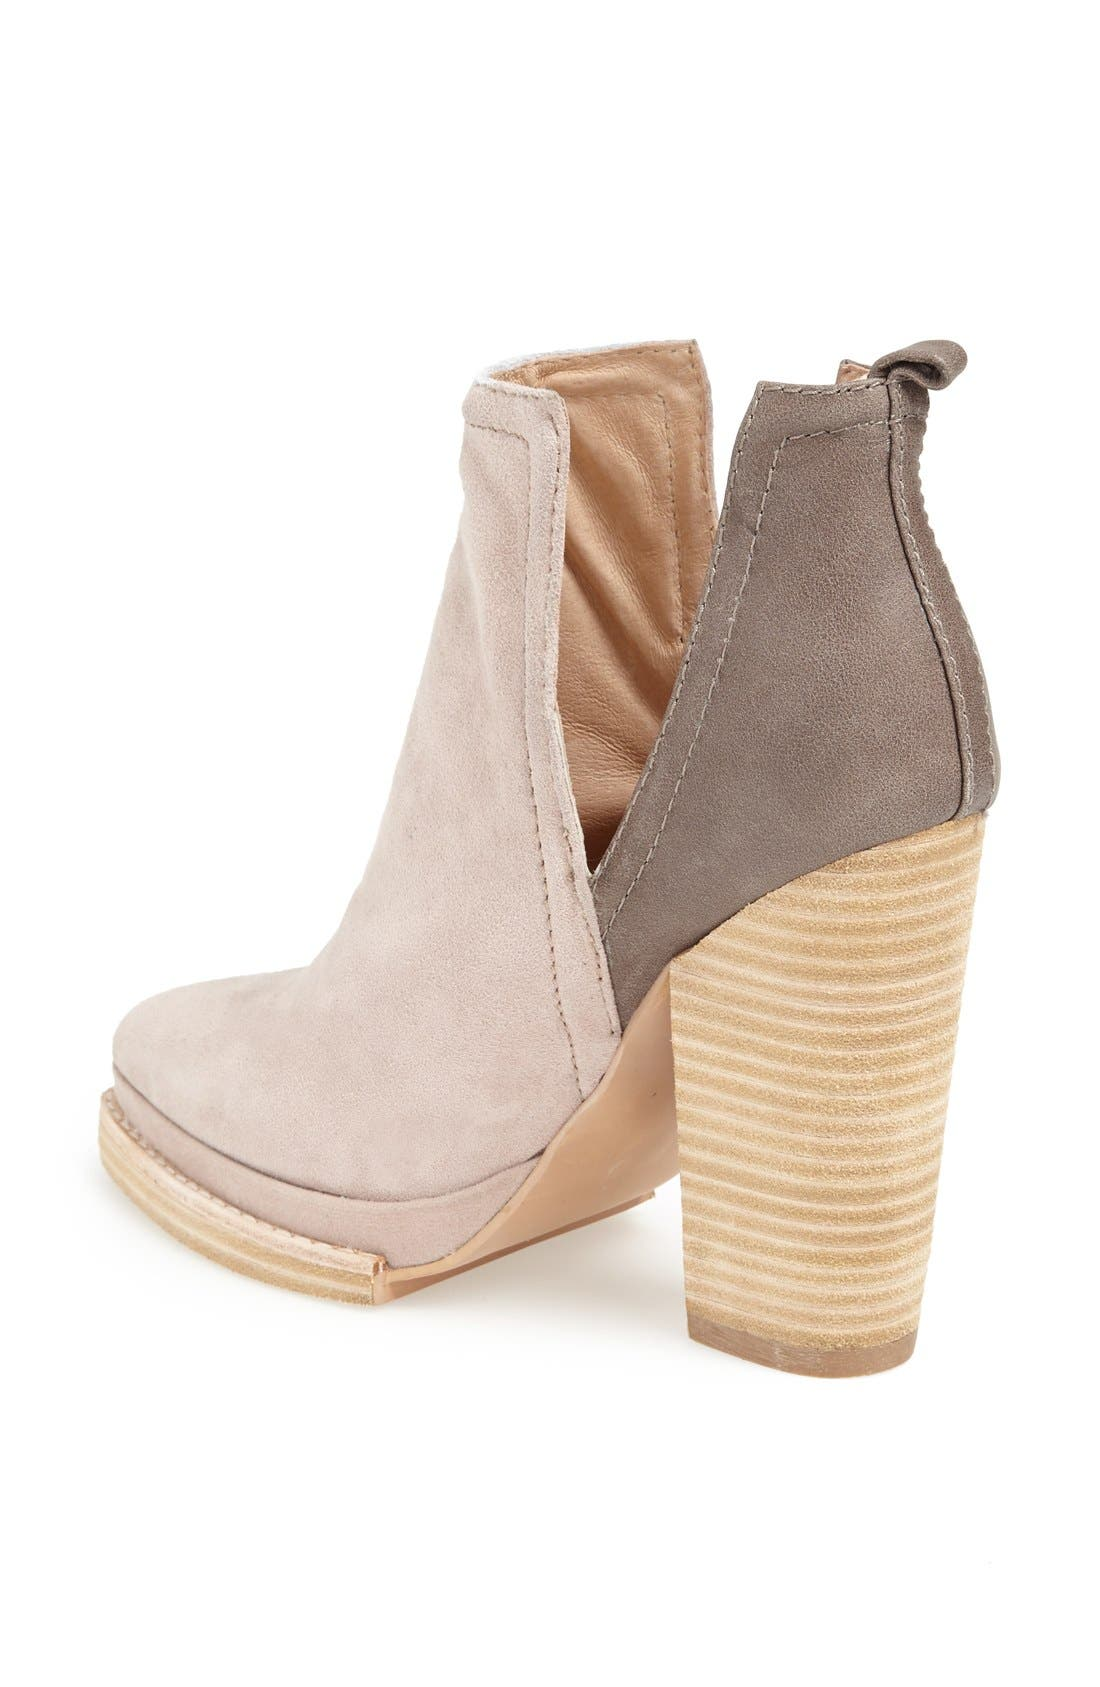 Alternate Image 2  - Jeffrey Campbell 'Who's Next' Leather Bootie